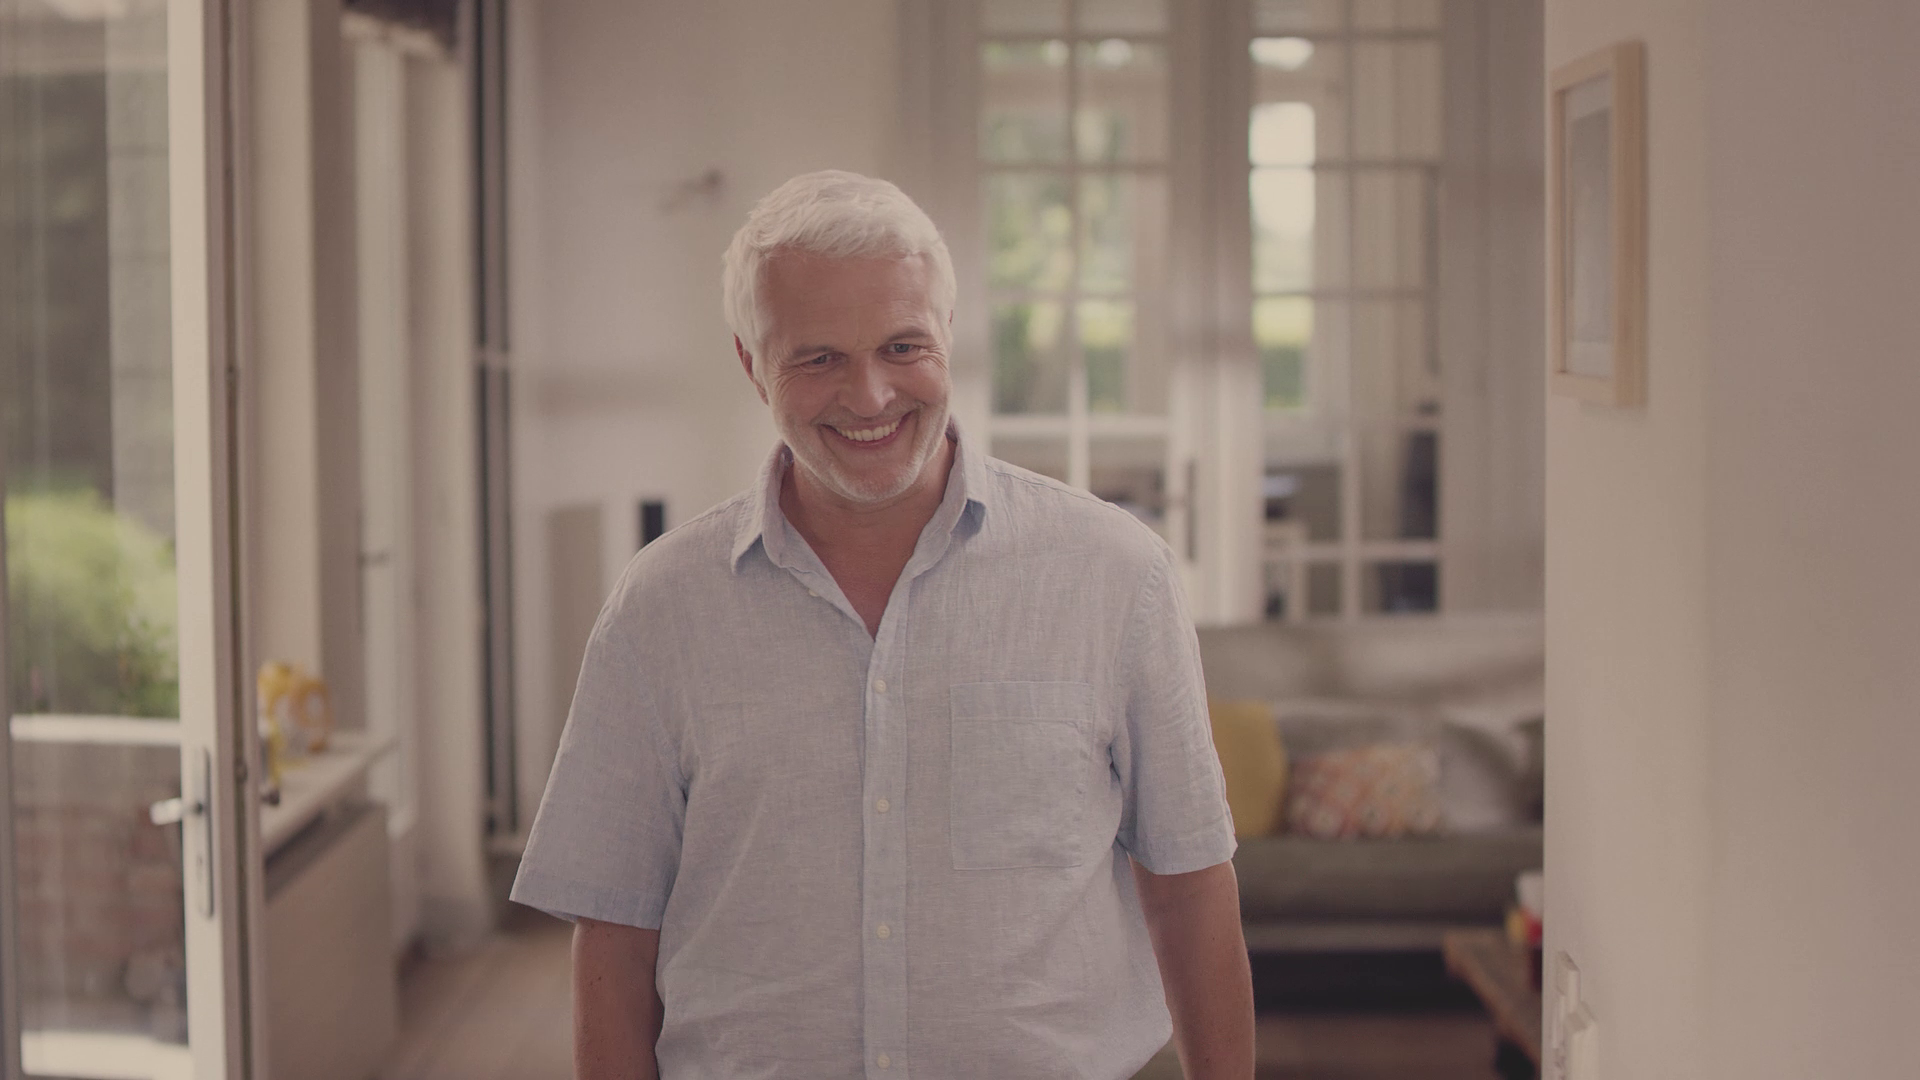 old smiling man with white hair walking in the kitchen